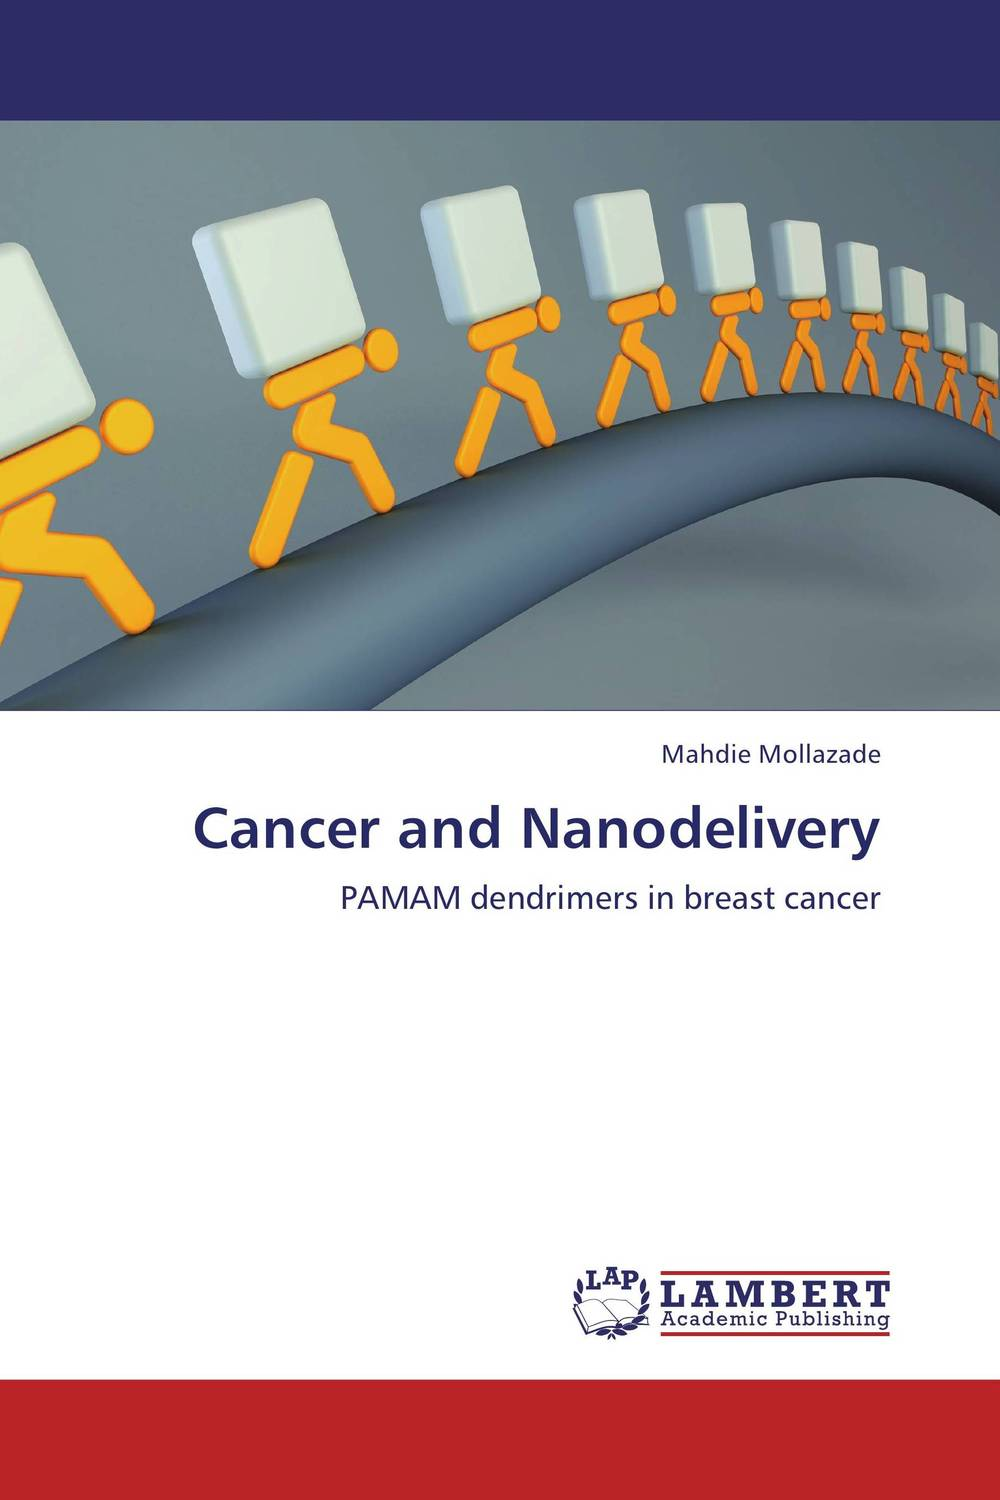 Фото Cancer and Nanodelivery cervical cancer in amhara region in ethiopia